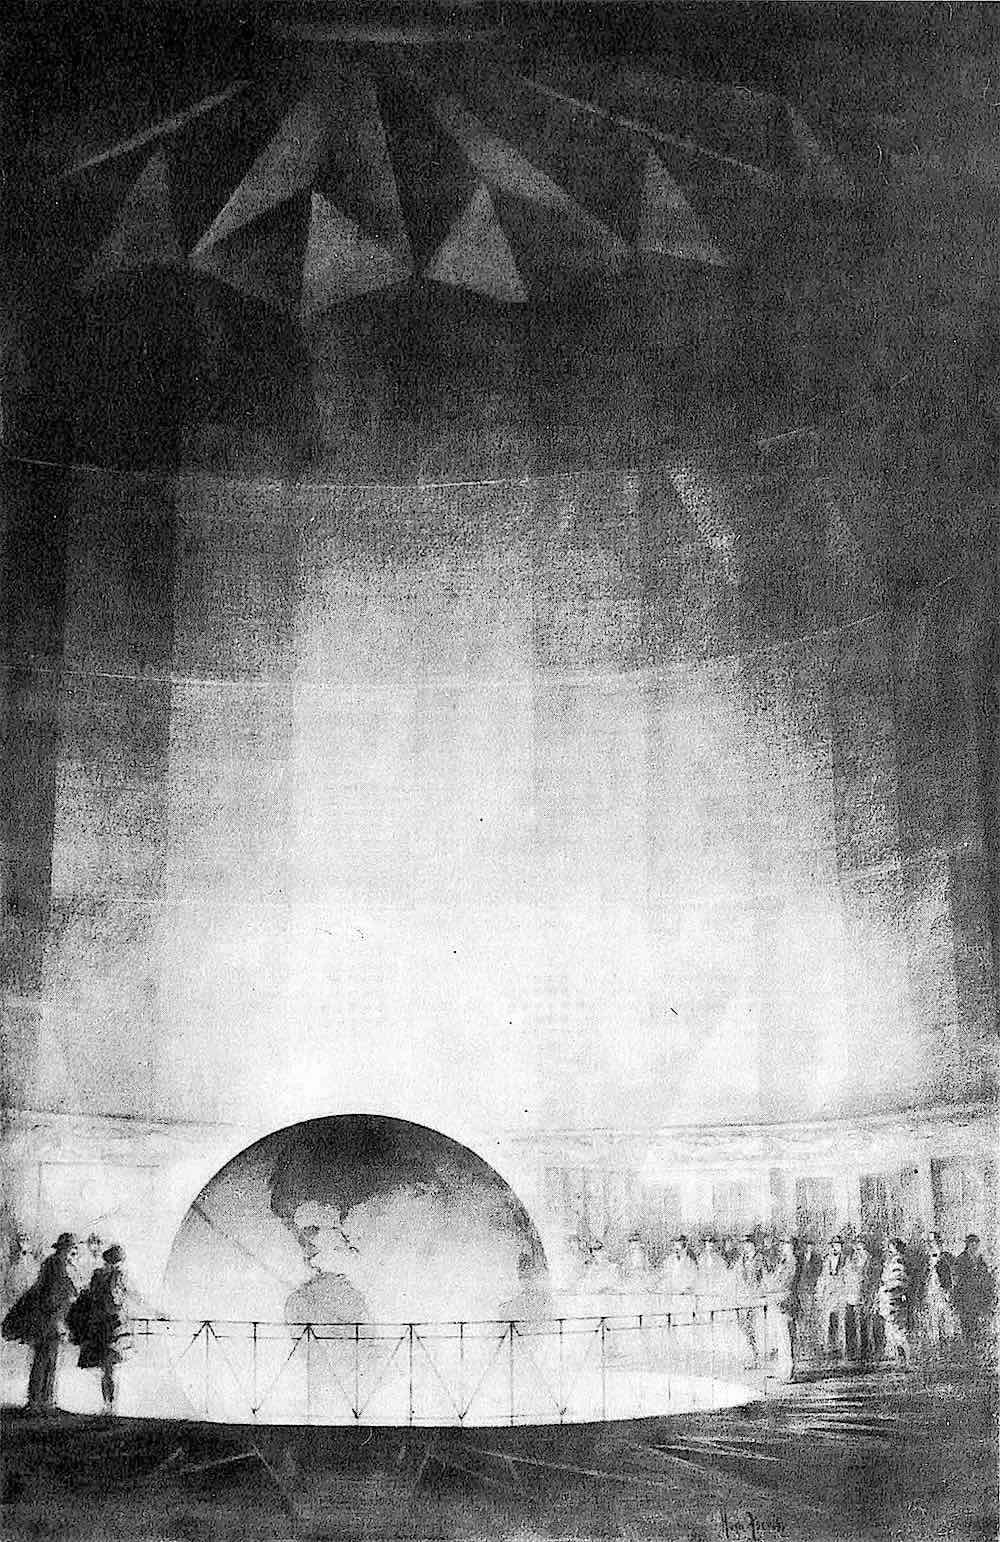 Hugh Ferriss 1929, the lobby of the Daily News Building